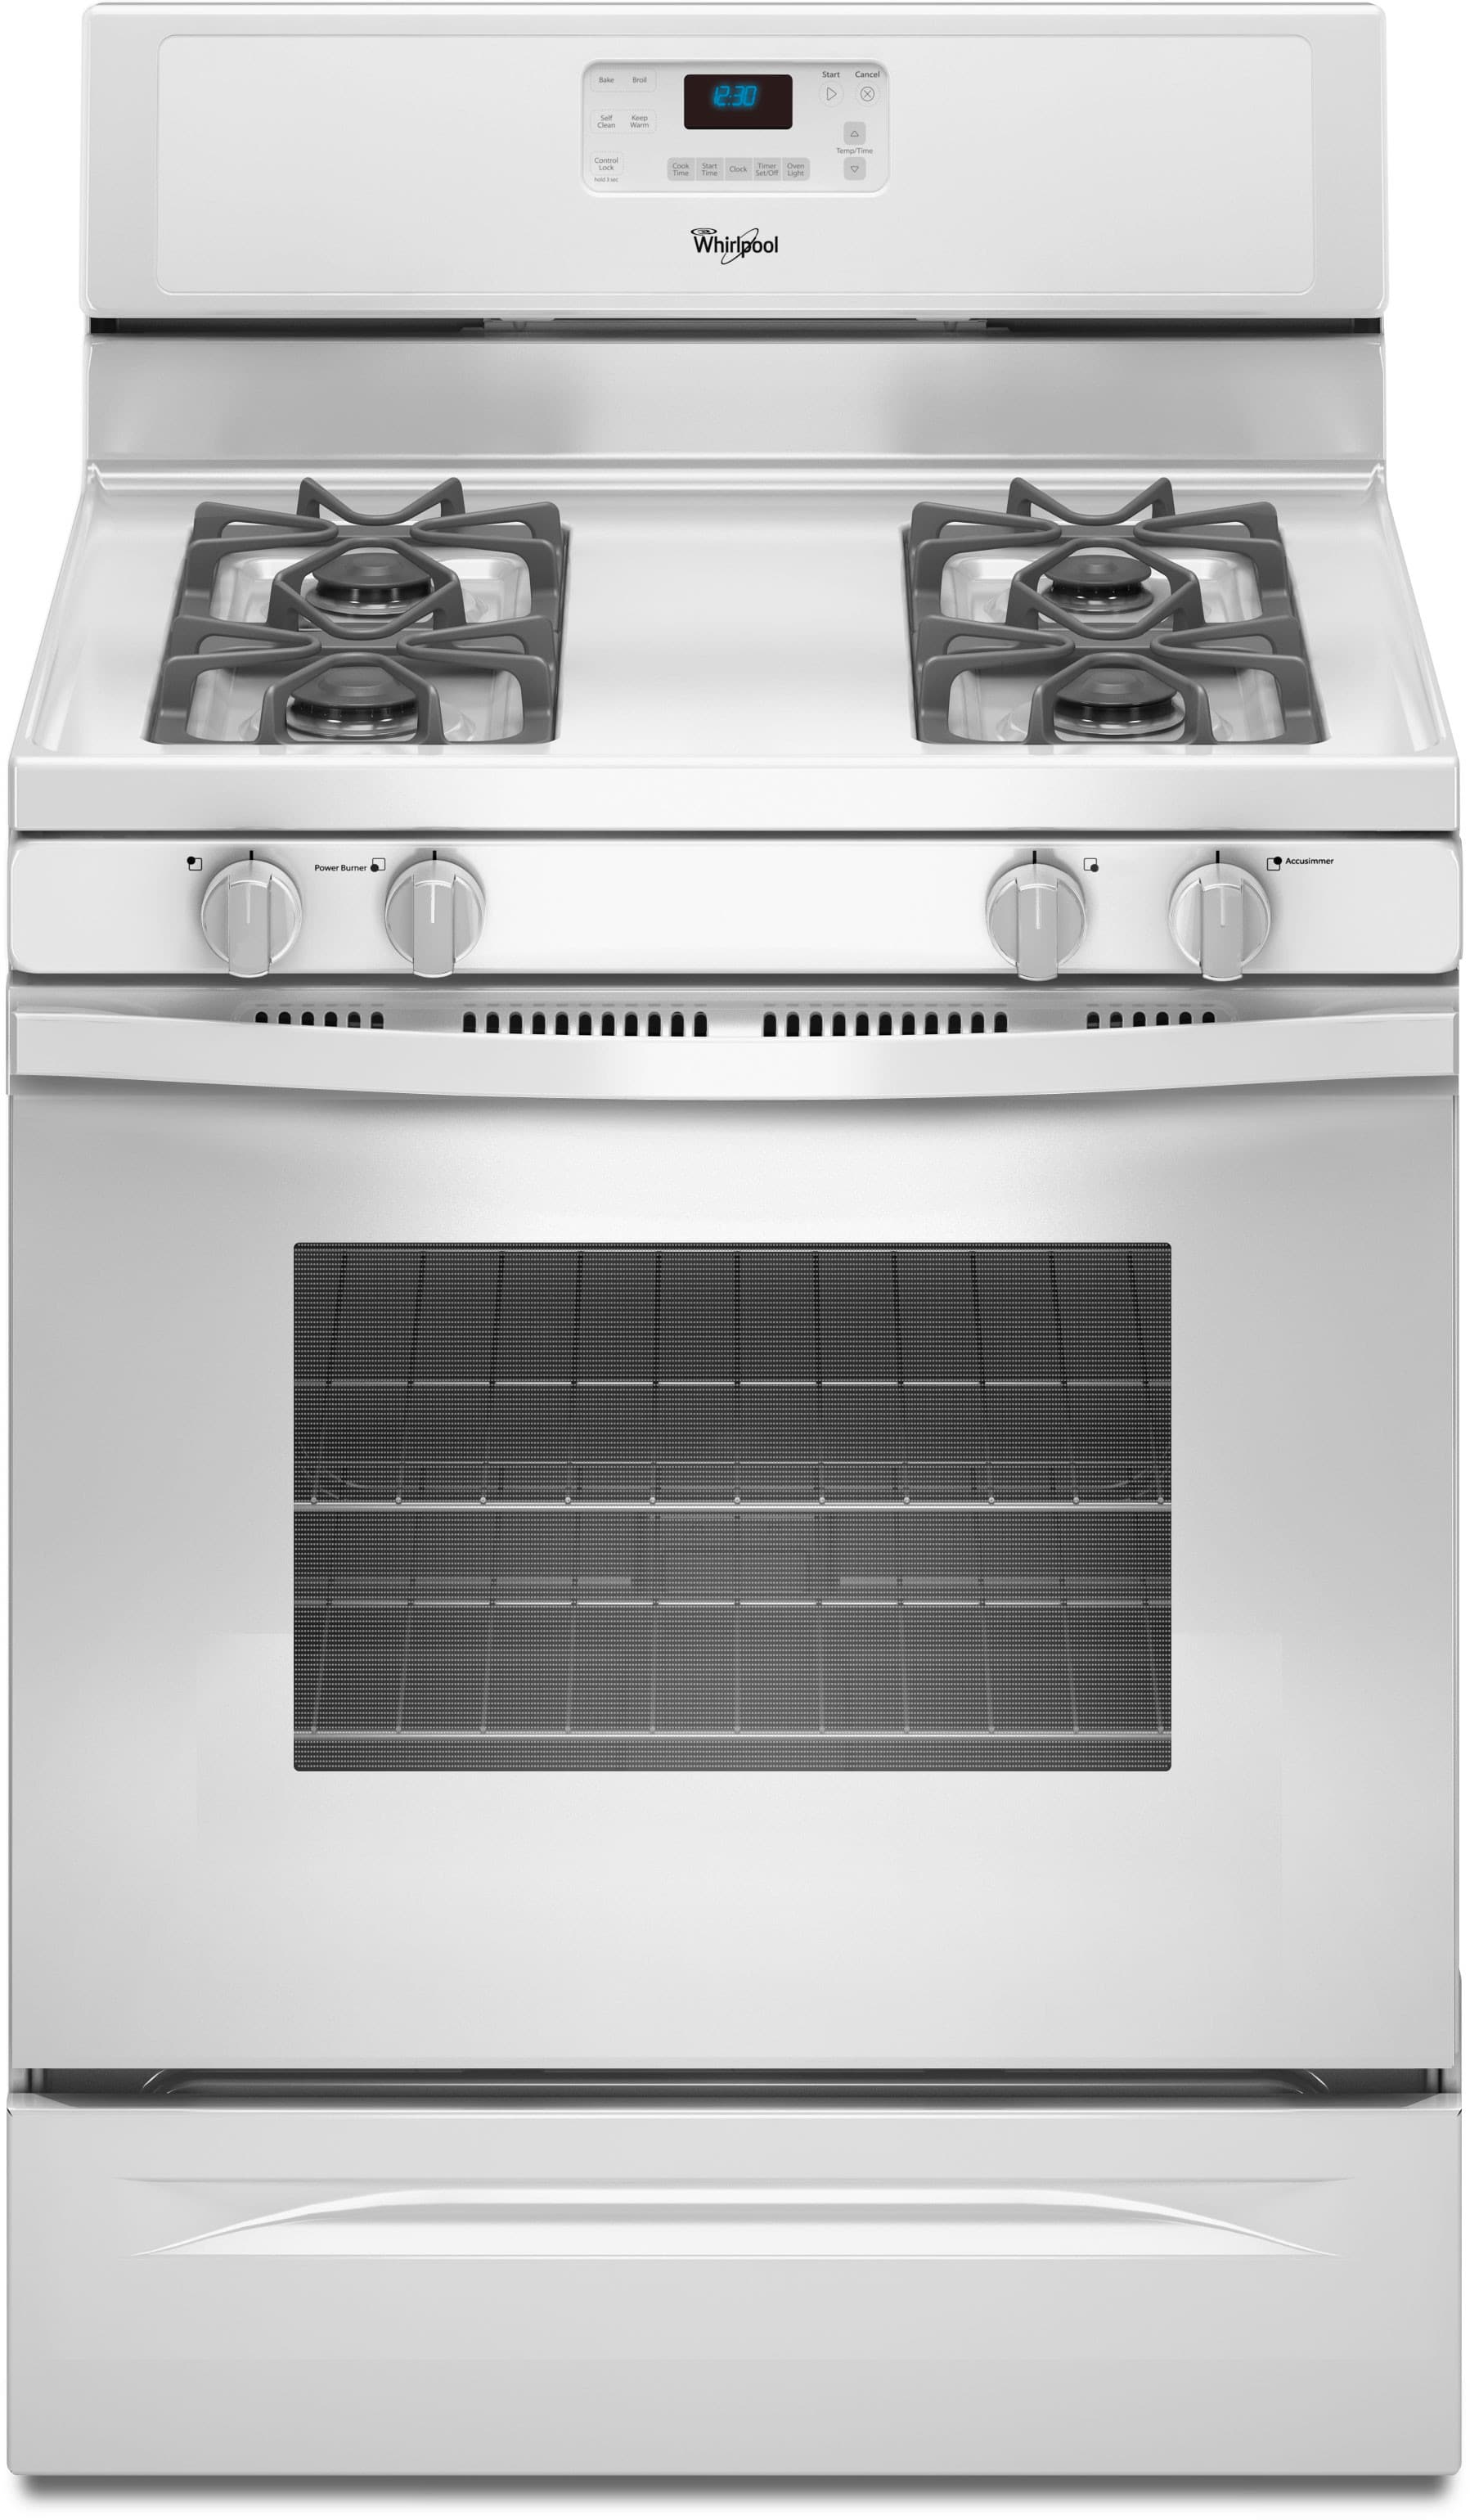 Whirlpool Wfg510s0aw 30 Inch Freestanding Gas Range With 4